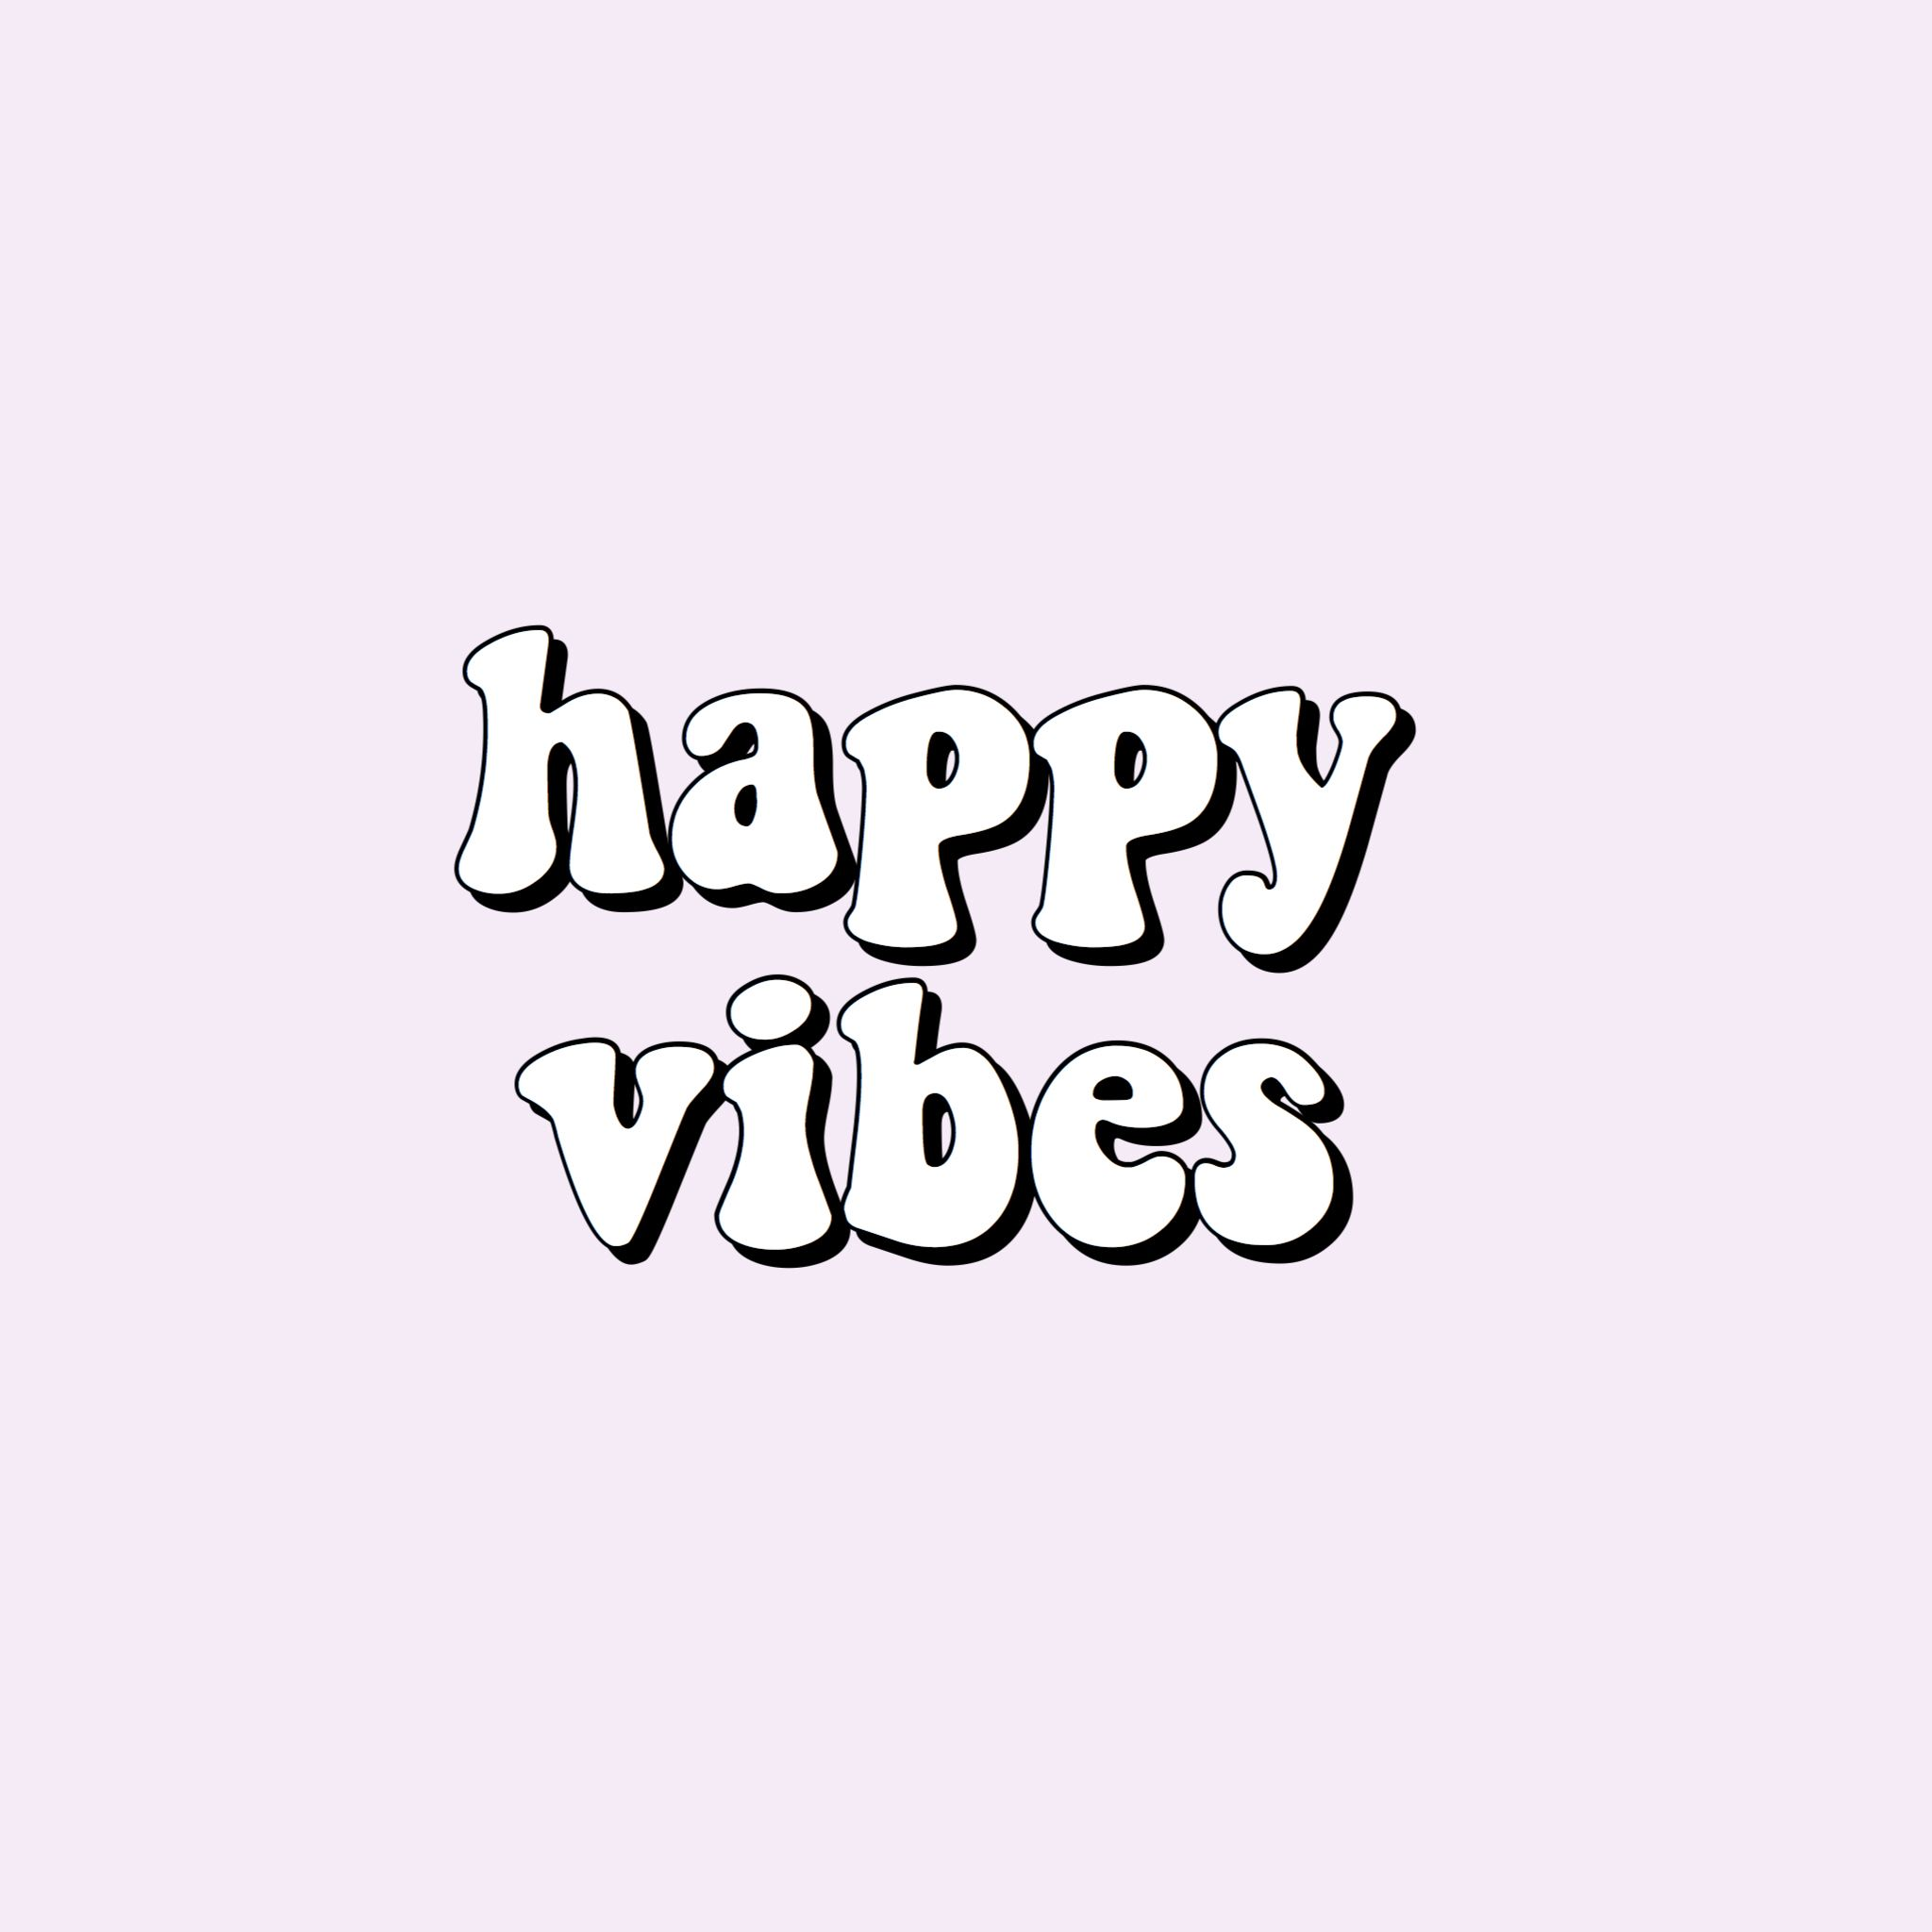 Aesthetic vsco clipart image black and white stock happy vibes words quote happiness aesthetic purple vsco tumblr ... image black and white stock